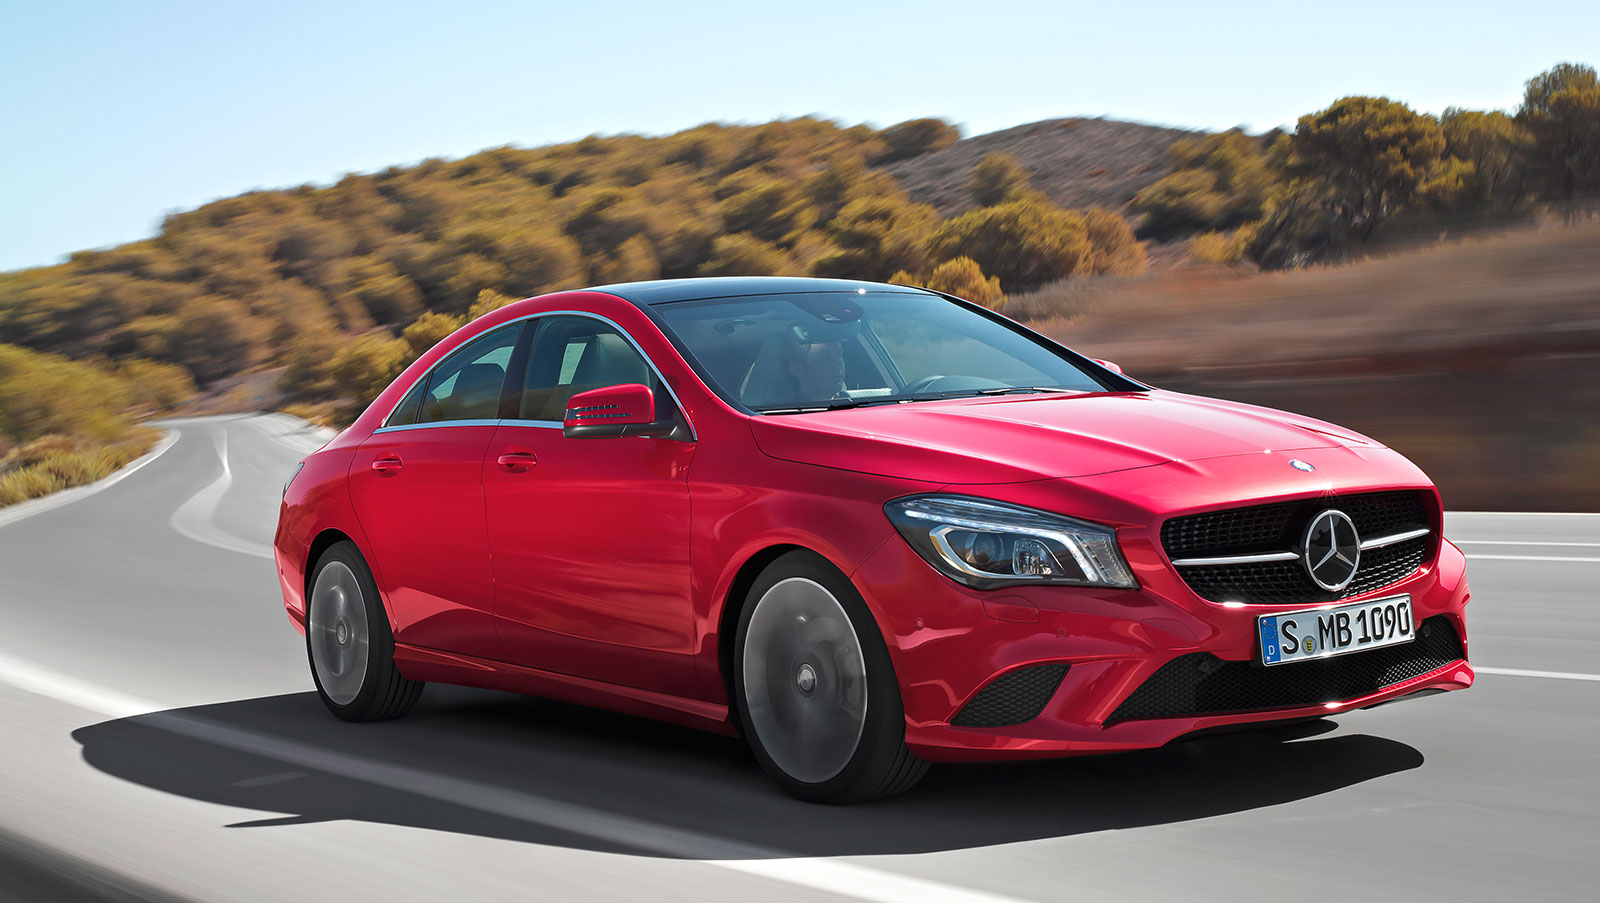 2015 mercedes benz cla new model year updates for Mercedes benz 2015 models